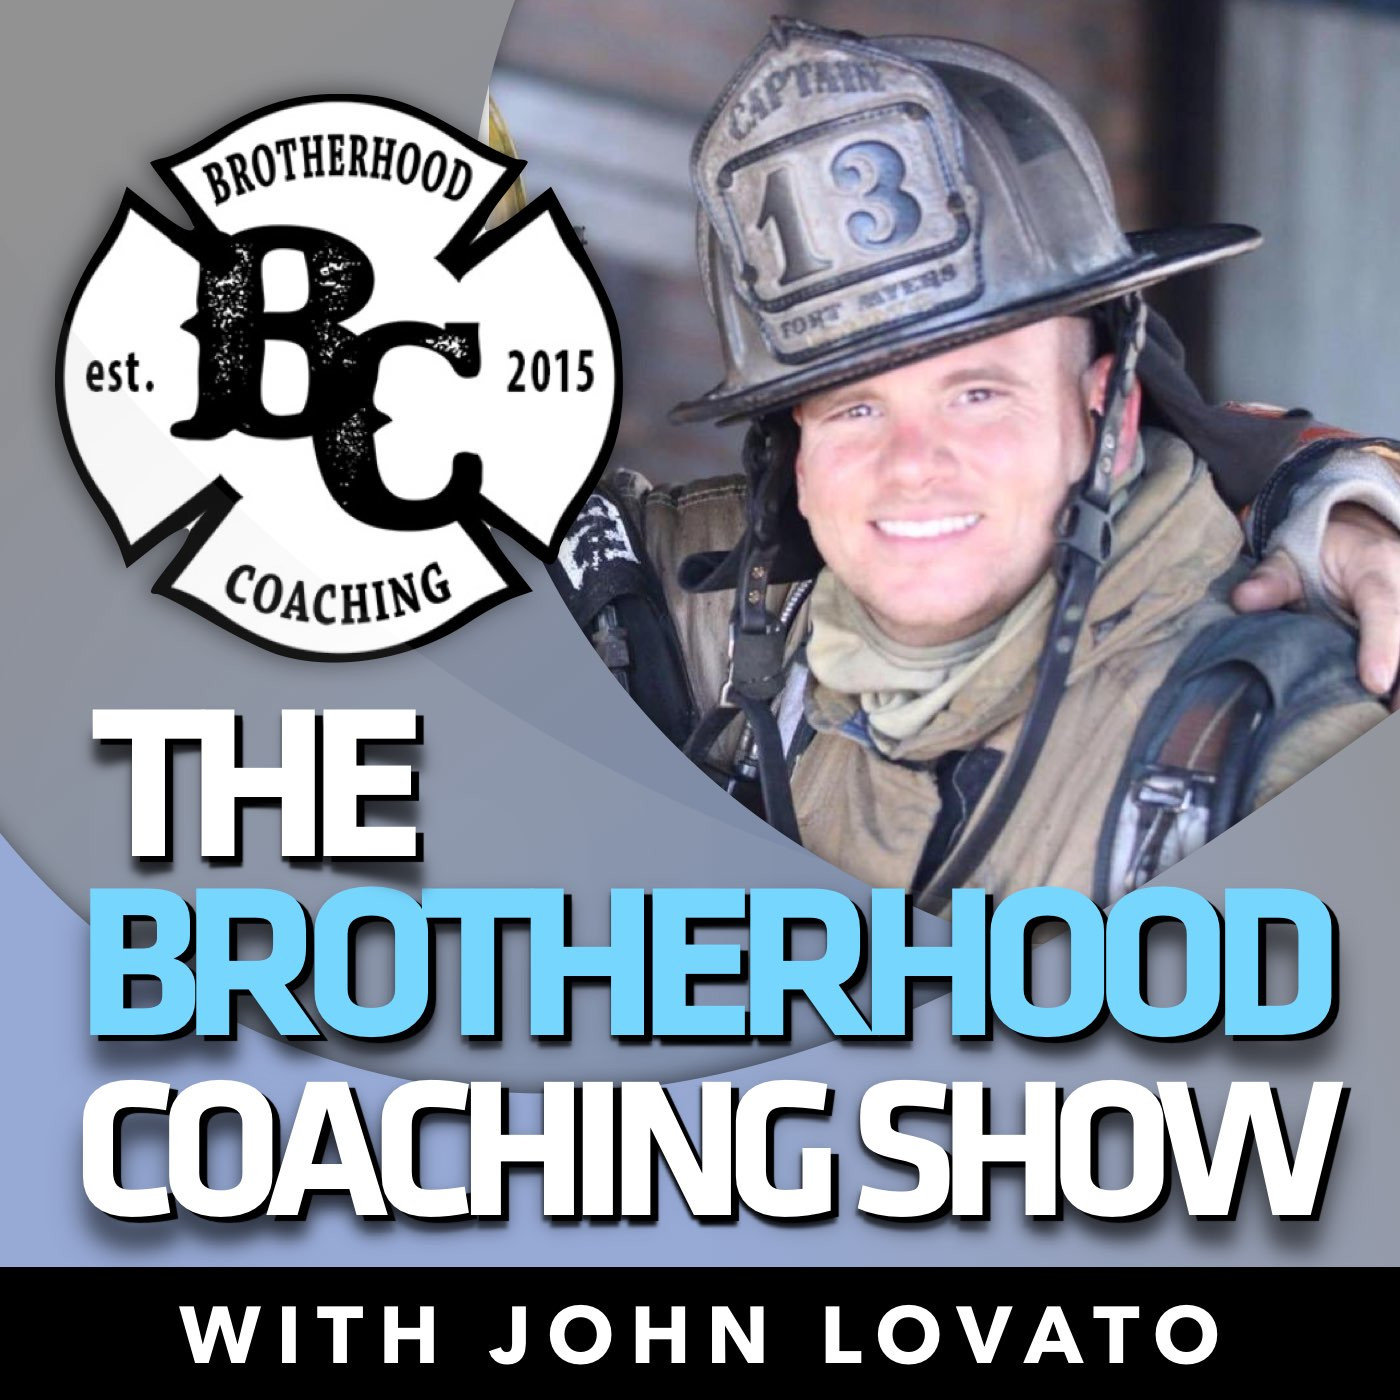 The Brotherhood Coaching Show